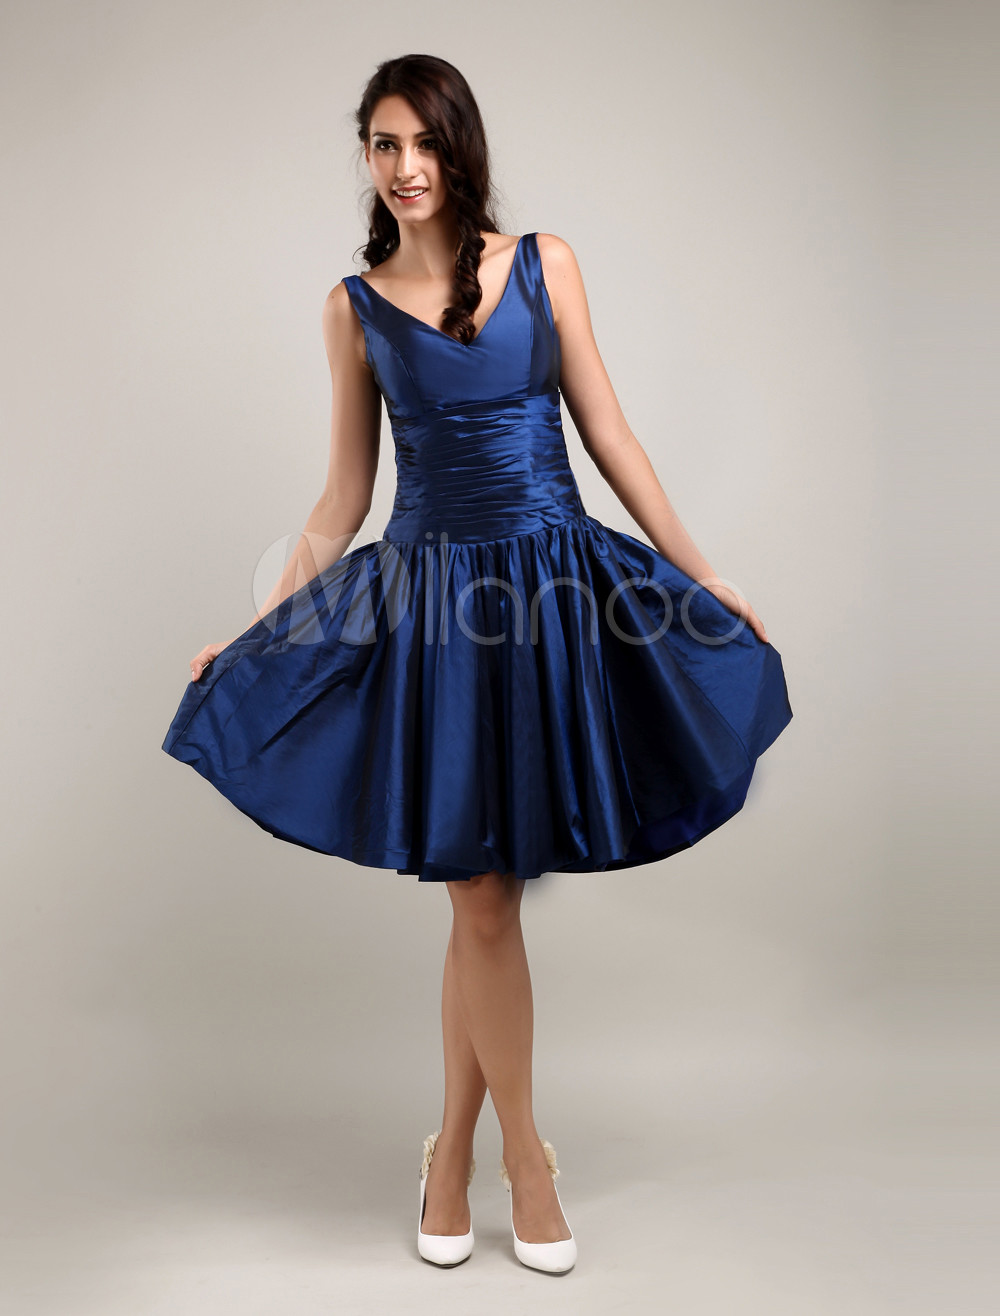 8aed2612ef13 ... Enticing V-Neck Pleated Knee Length Taffeta Bridesmaid Dress-No.8. 12.  90%OFF. Clearance. Color:Dark Navy